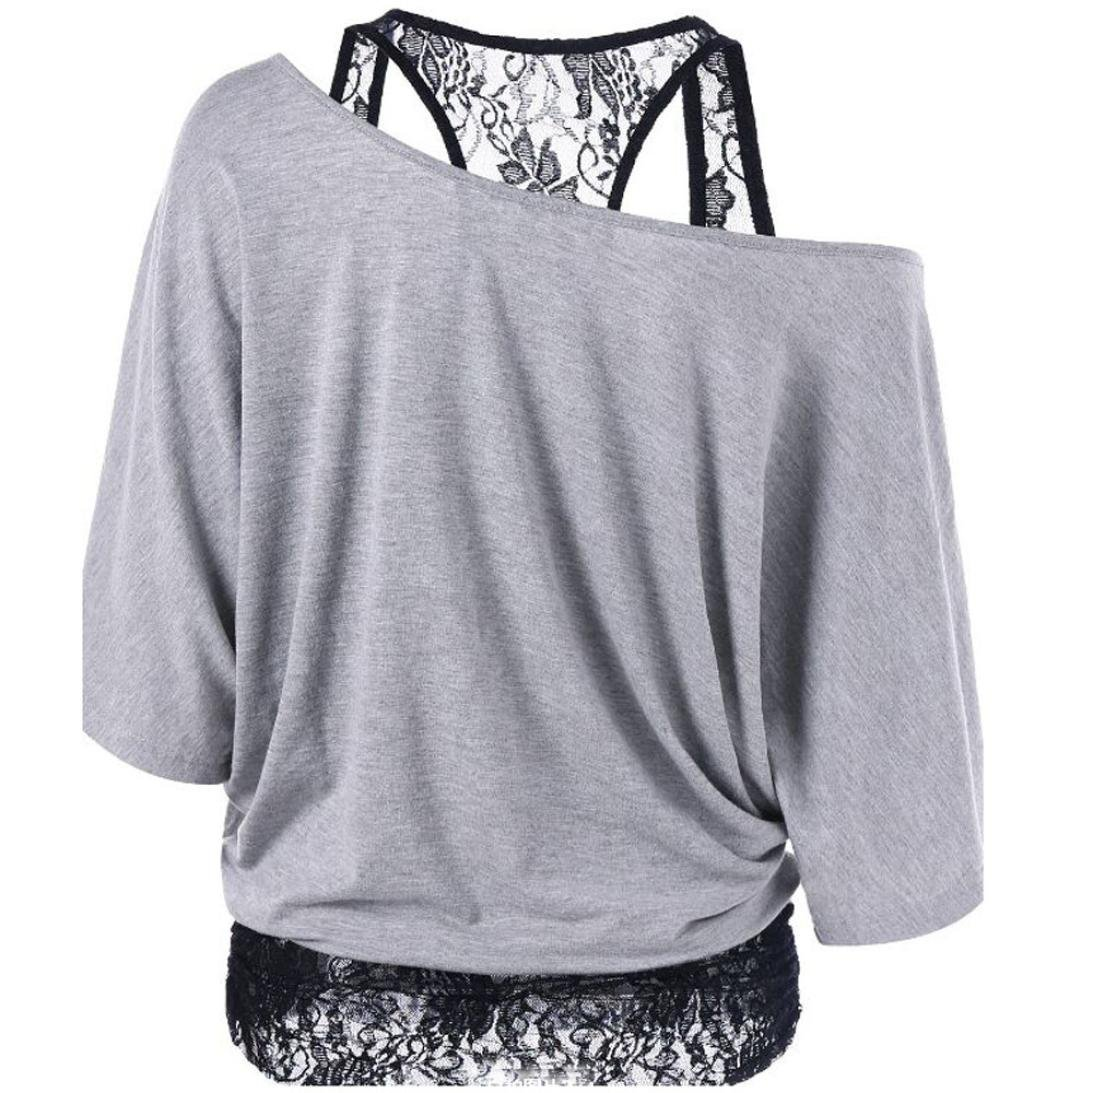 Kshion Women Lace Loose Casual Long Sleeve Tops Blouse Shirt Plus Size (XL, Gray)